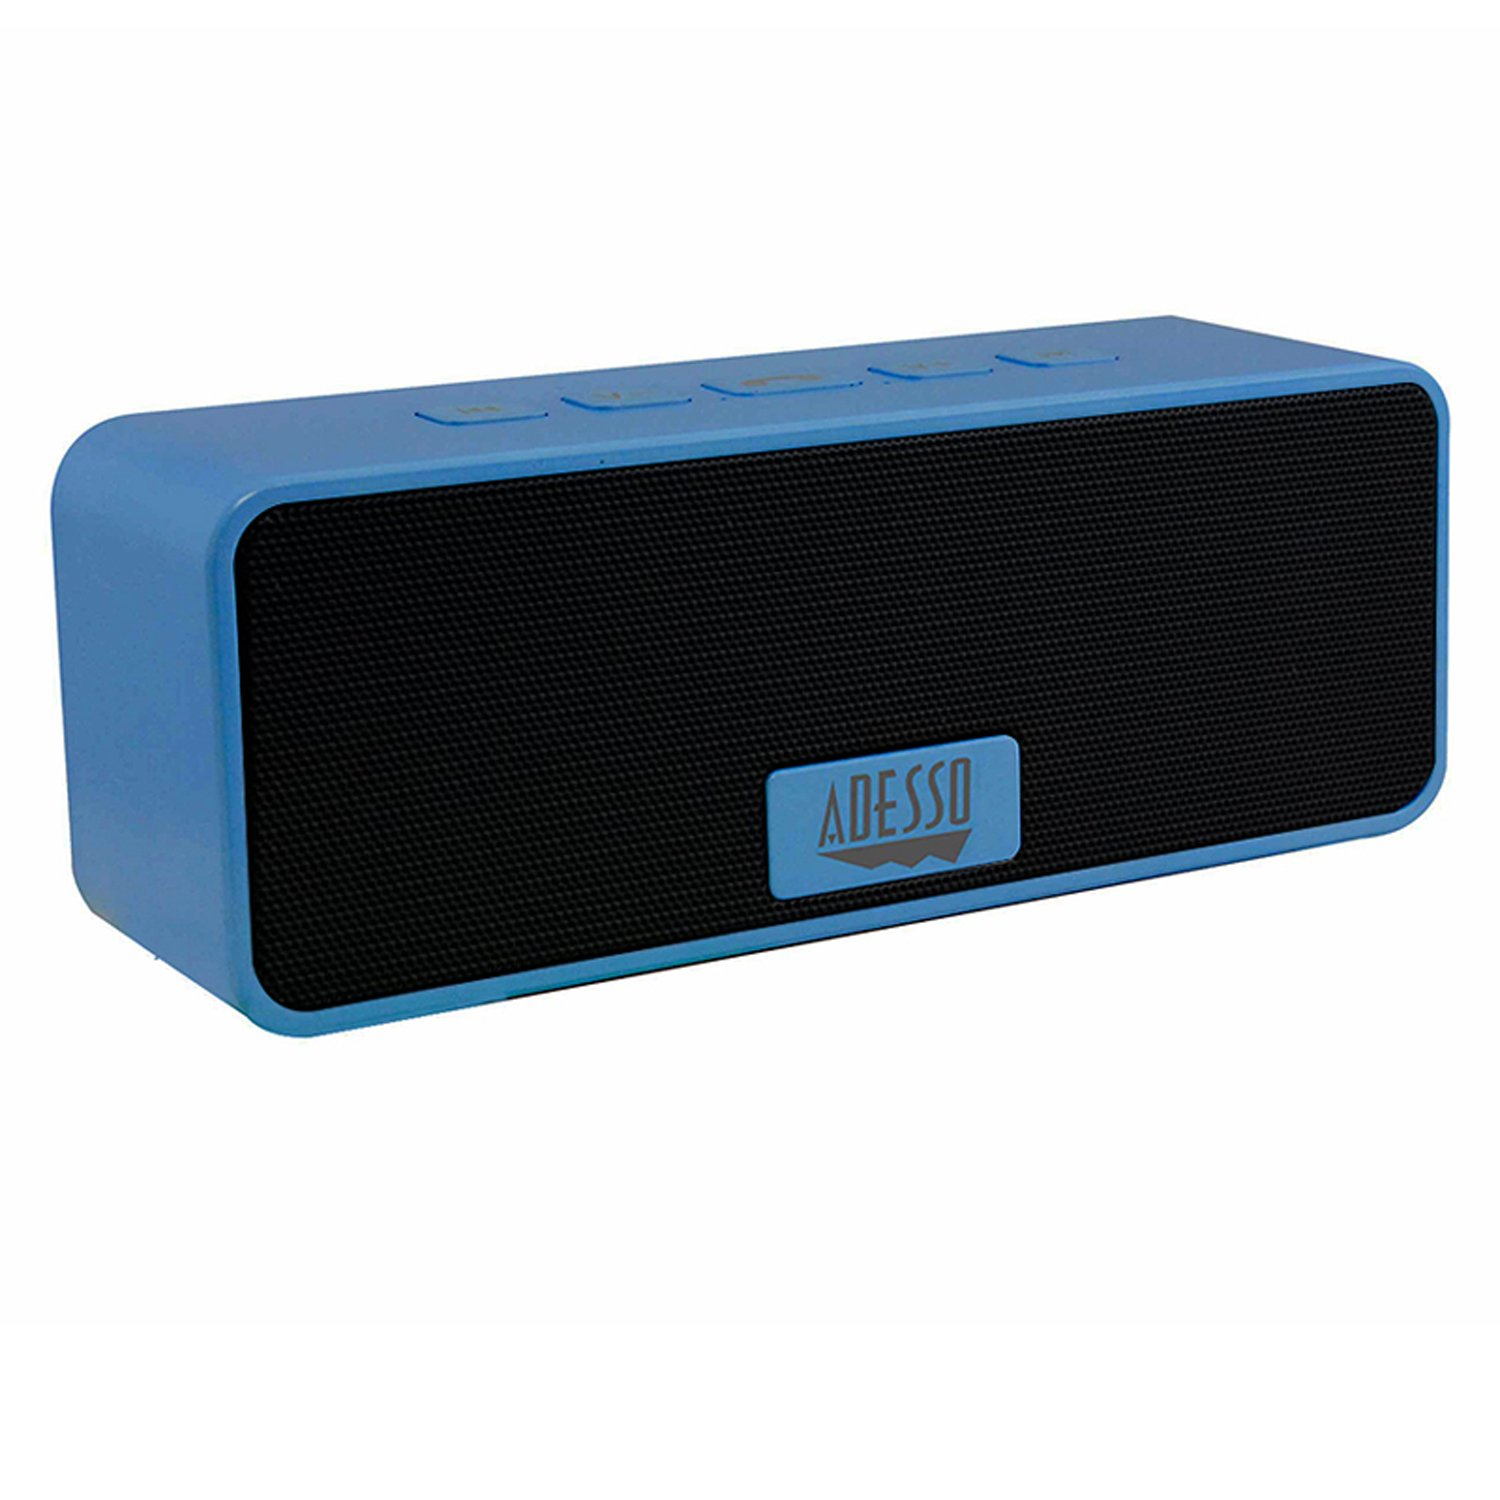 Adesso Xtream S2 Bluetooth 3.0 Portable Wireless Speakers for iPod, iPhone and Smartphones with Built-In Microphone